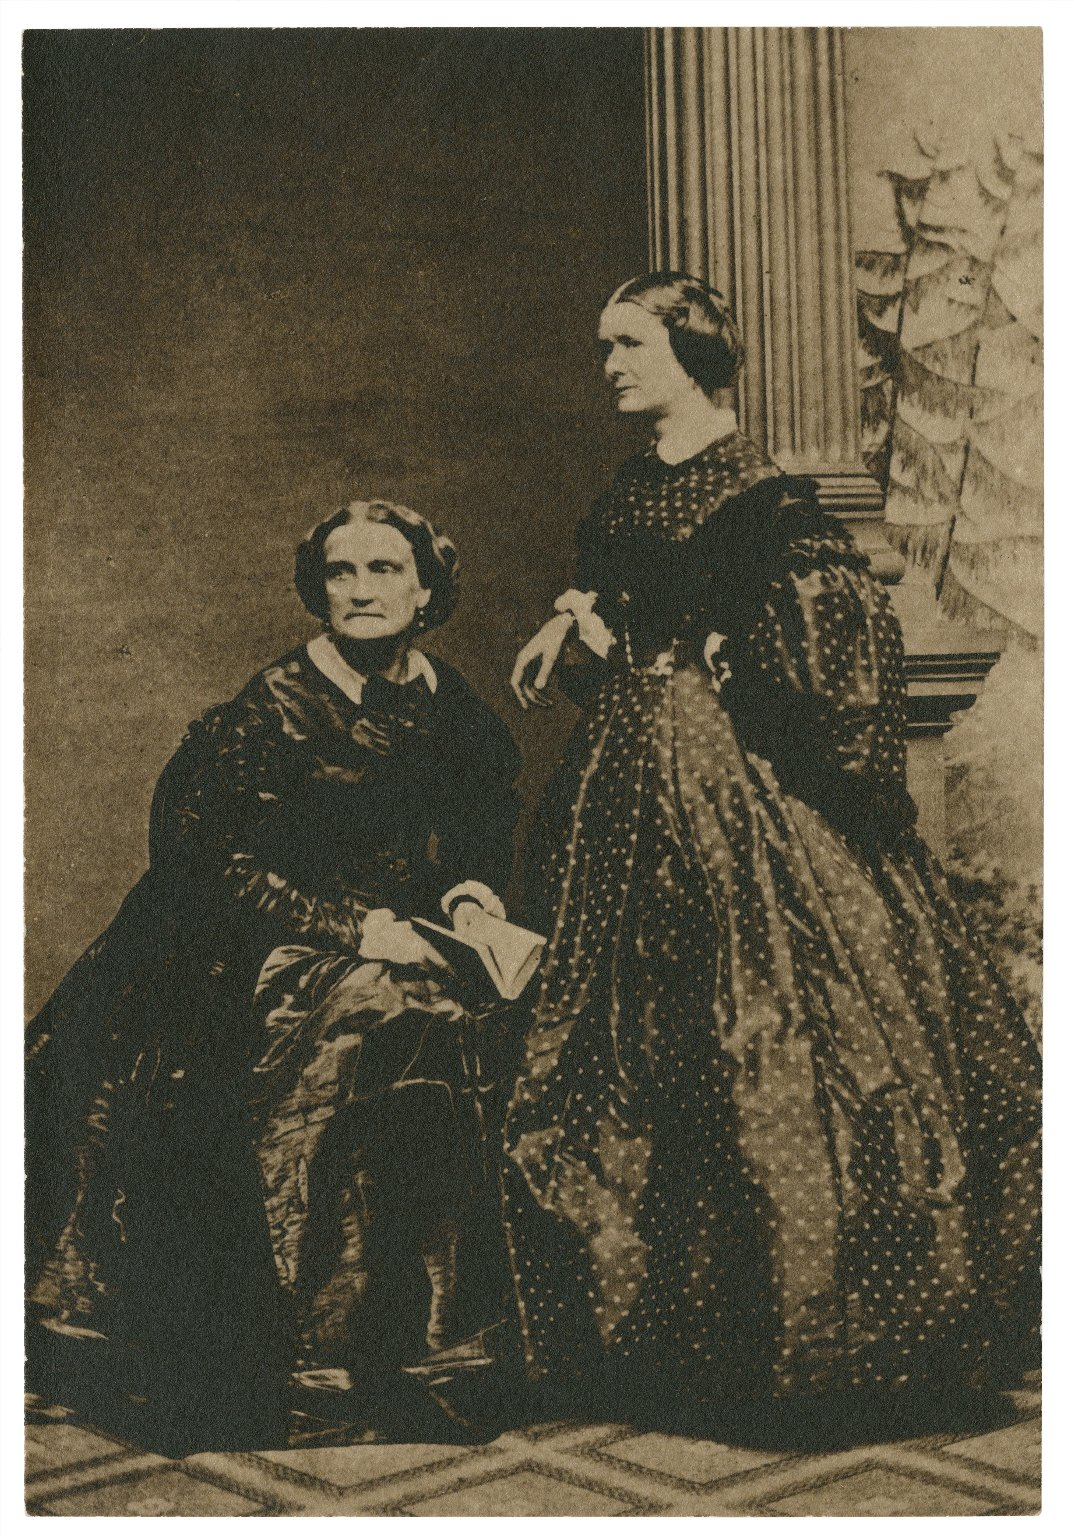 Photograph of two women in late-19th-century dress, the one on the left sitting and the one on the left standing